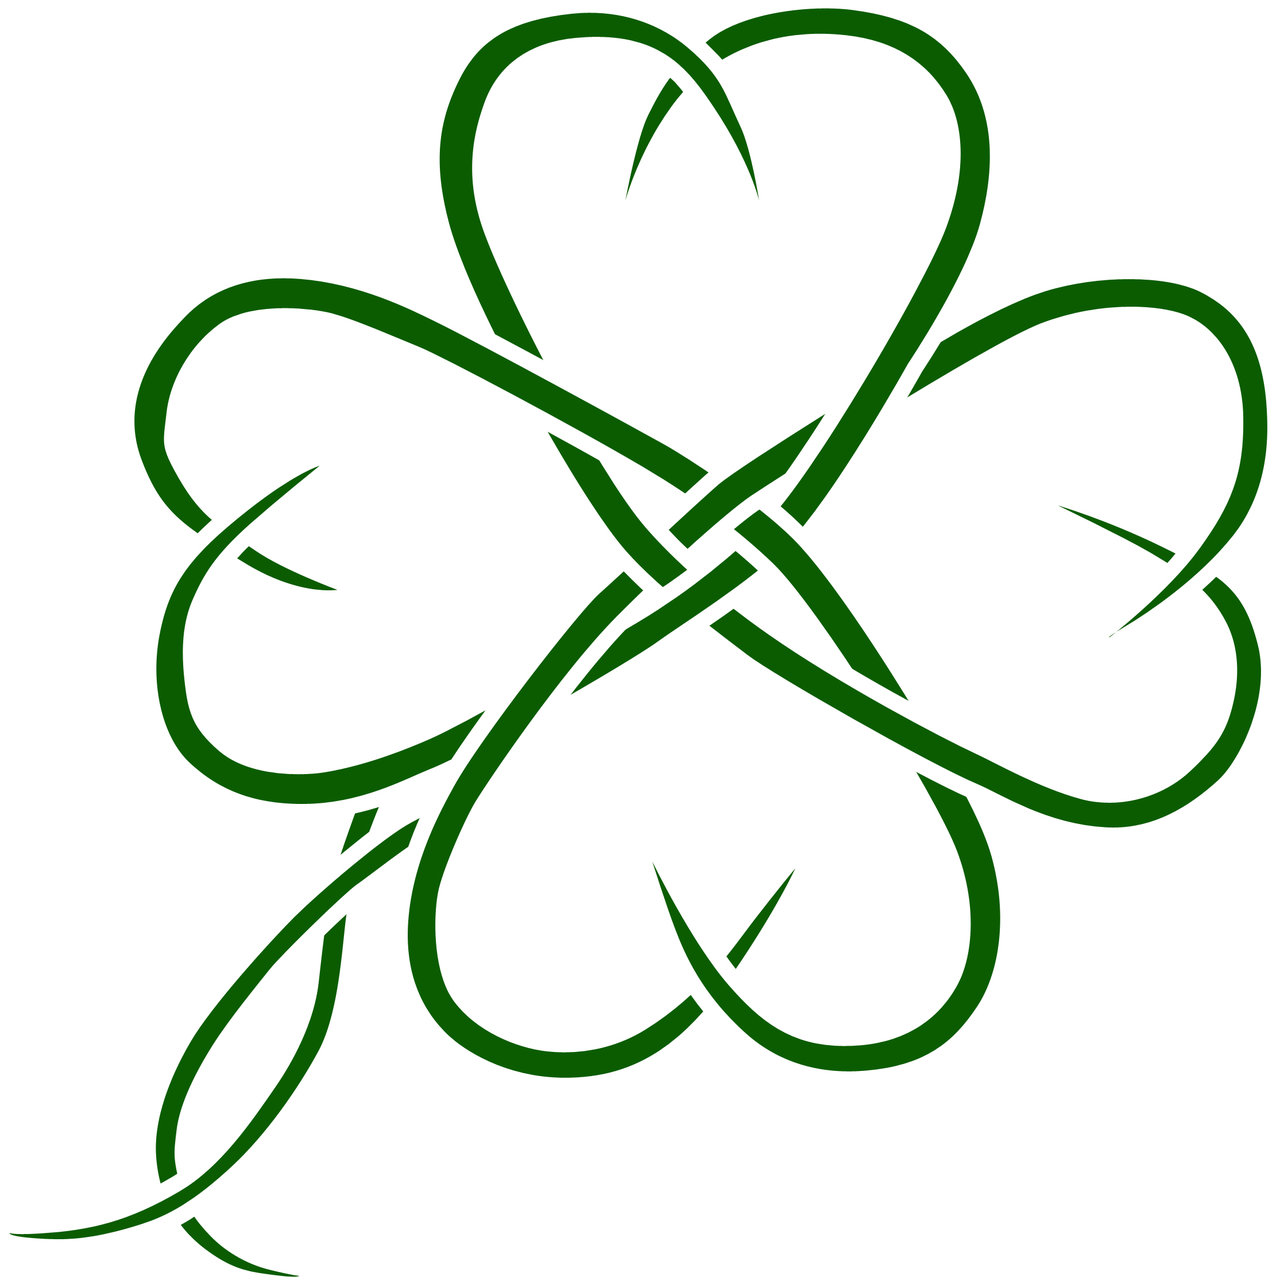 My Tattoo Designs: Clover Tattoos For Women